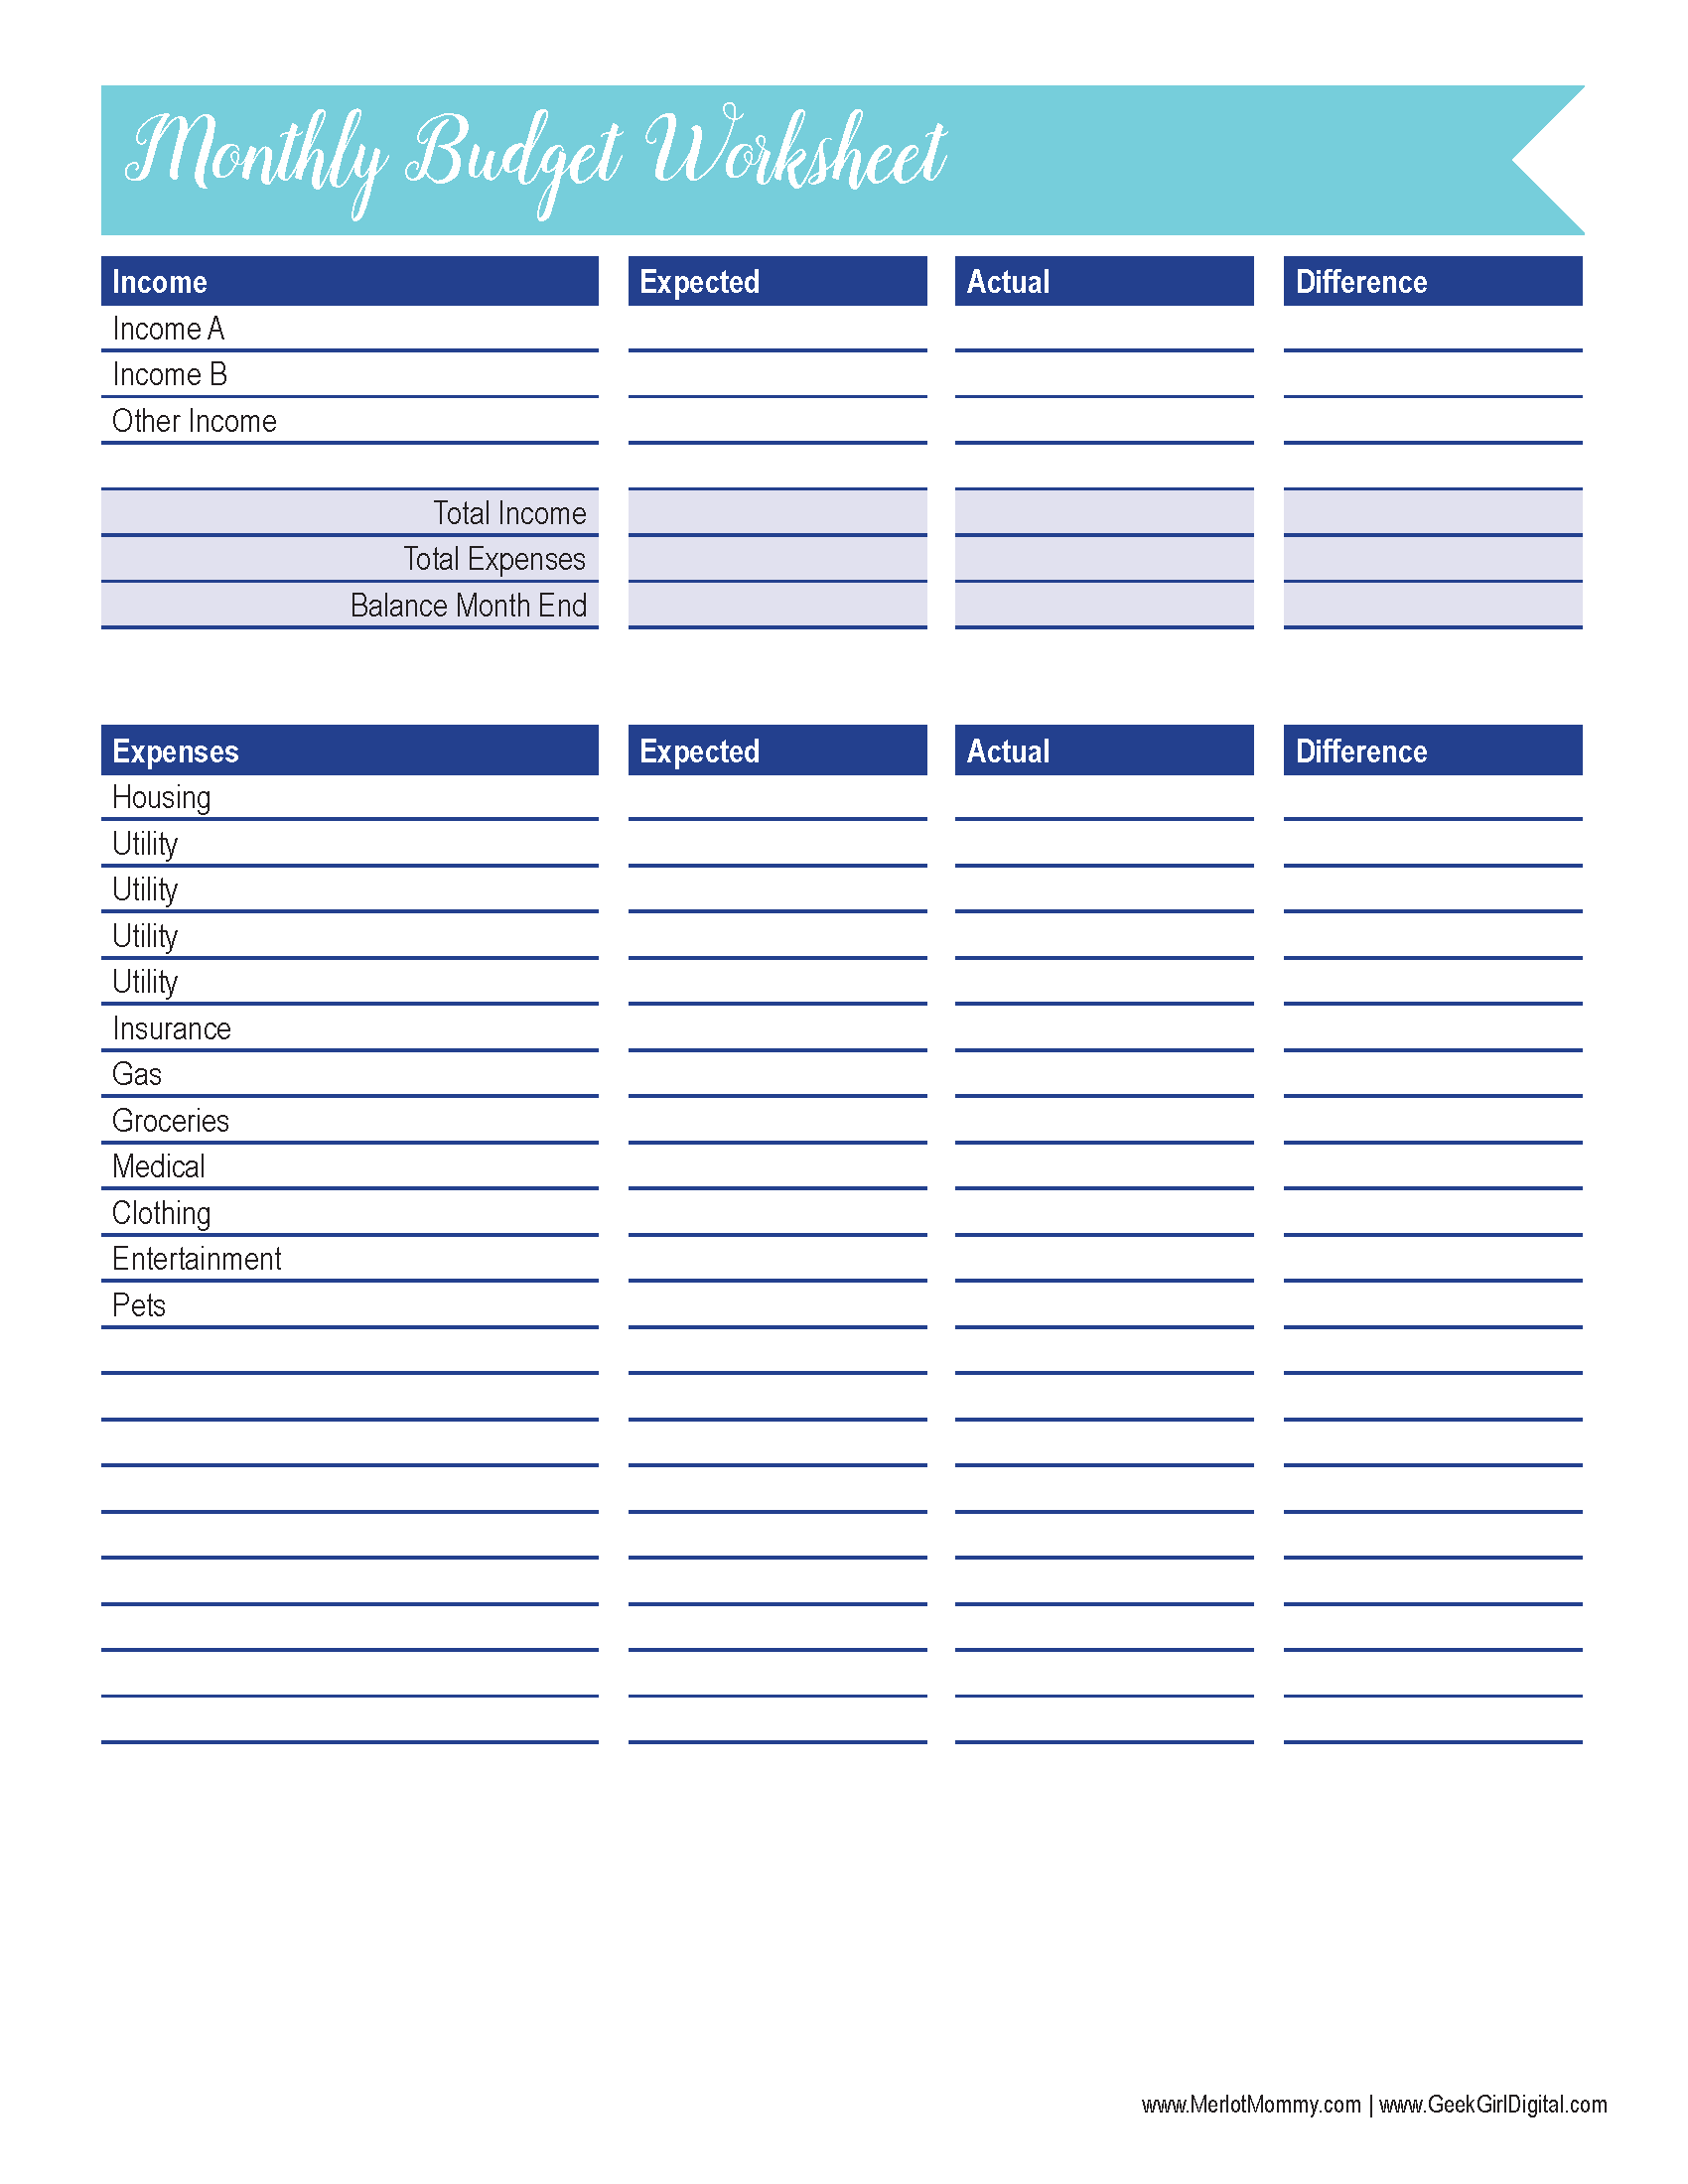 blank monthly budget template as well Free Printable Monthly Budget Worksheets With Financial Bud together with  likewise 7 Free Printable Budgeting Worksheets also Monthly Budget Planner   Free Printable Budget Worksheet as well  furthermore budget template google further free printable monthly budget worksheet   Gese ciceros co furthermore Blank Budget Spreadsheet Lara Expolicenciaslatam Co Monthly together with  also Monthly Budget Worksheet   Free Printable   Viva Veltoro also free printable monthly budget worksheet   Gese ciceros co additionally Worksheets  Free Printable Monthly Budget Worksheets   Free also Blank Monthly Budget Worksheet Frugal Fanatic Family Template Free further FREE Printable Budget Forms   Queen of Free together with Budget Sheet   Track Monthly Finances Using FREE Printables. on free printable monthly budget worksheet